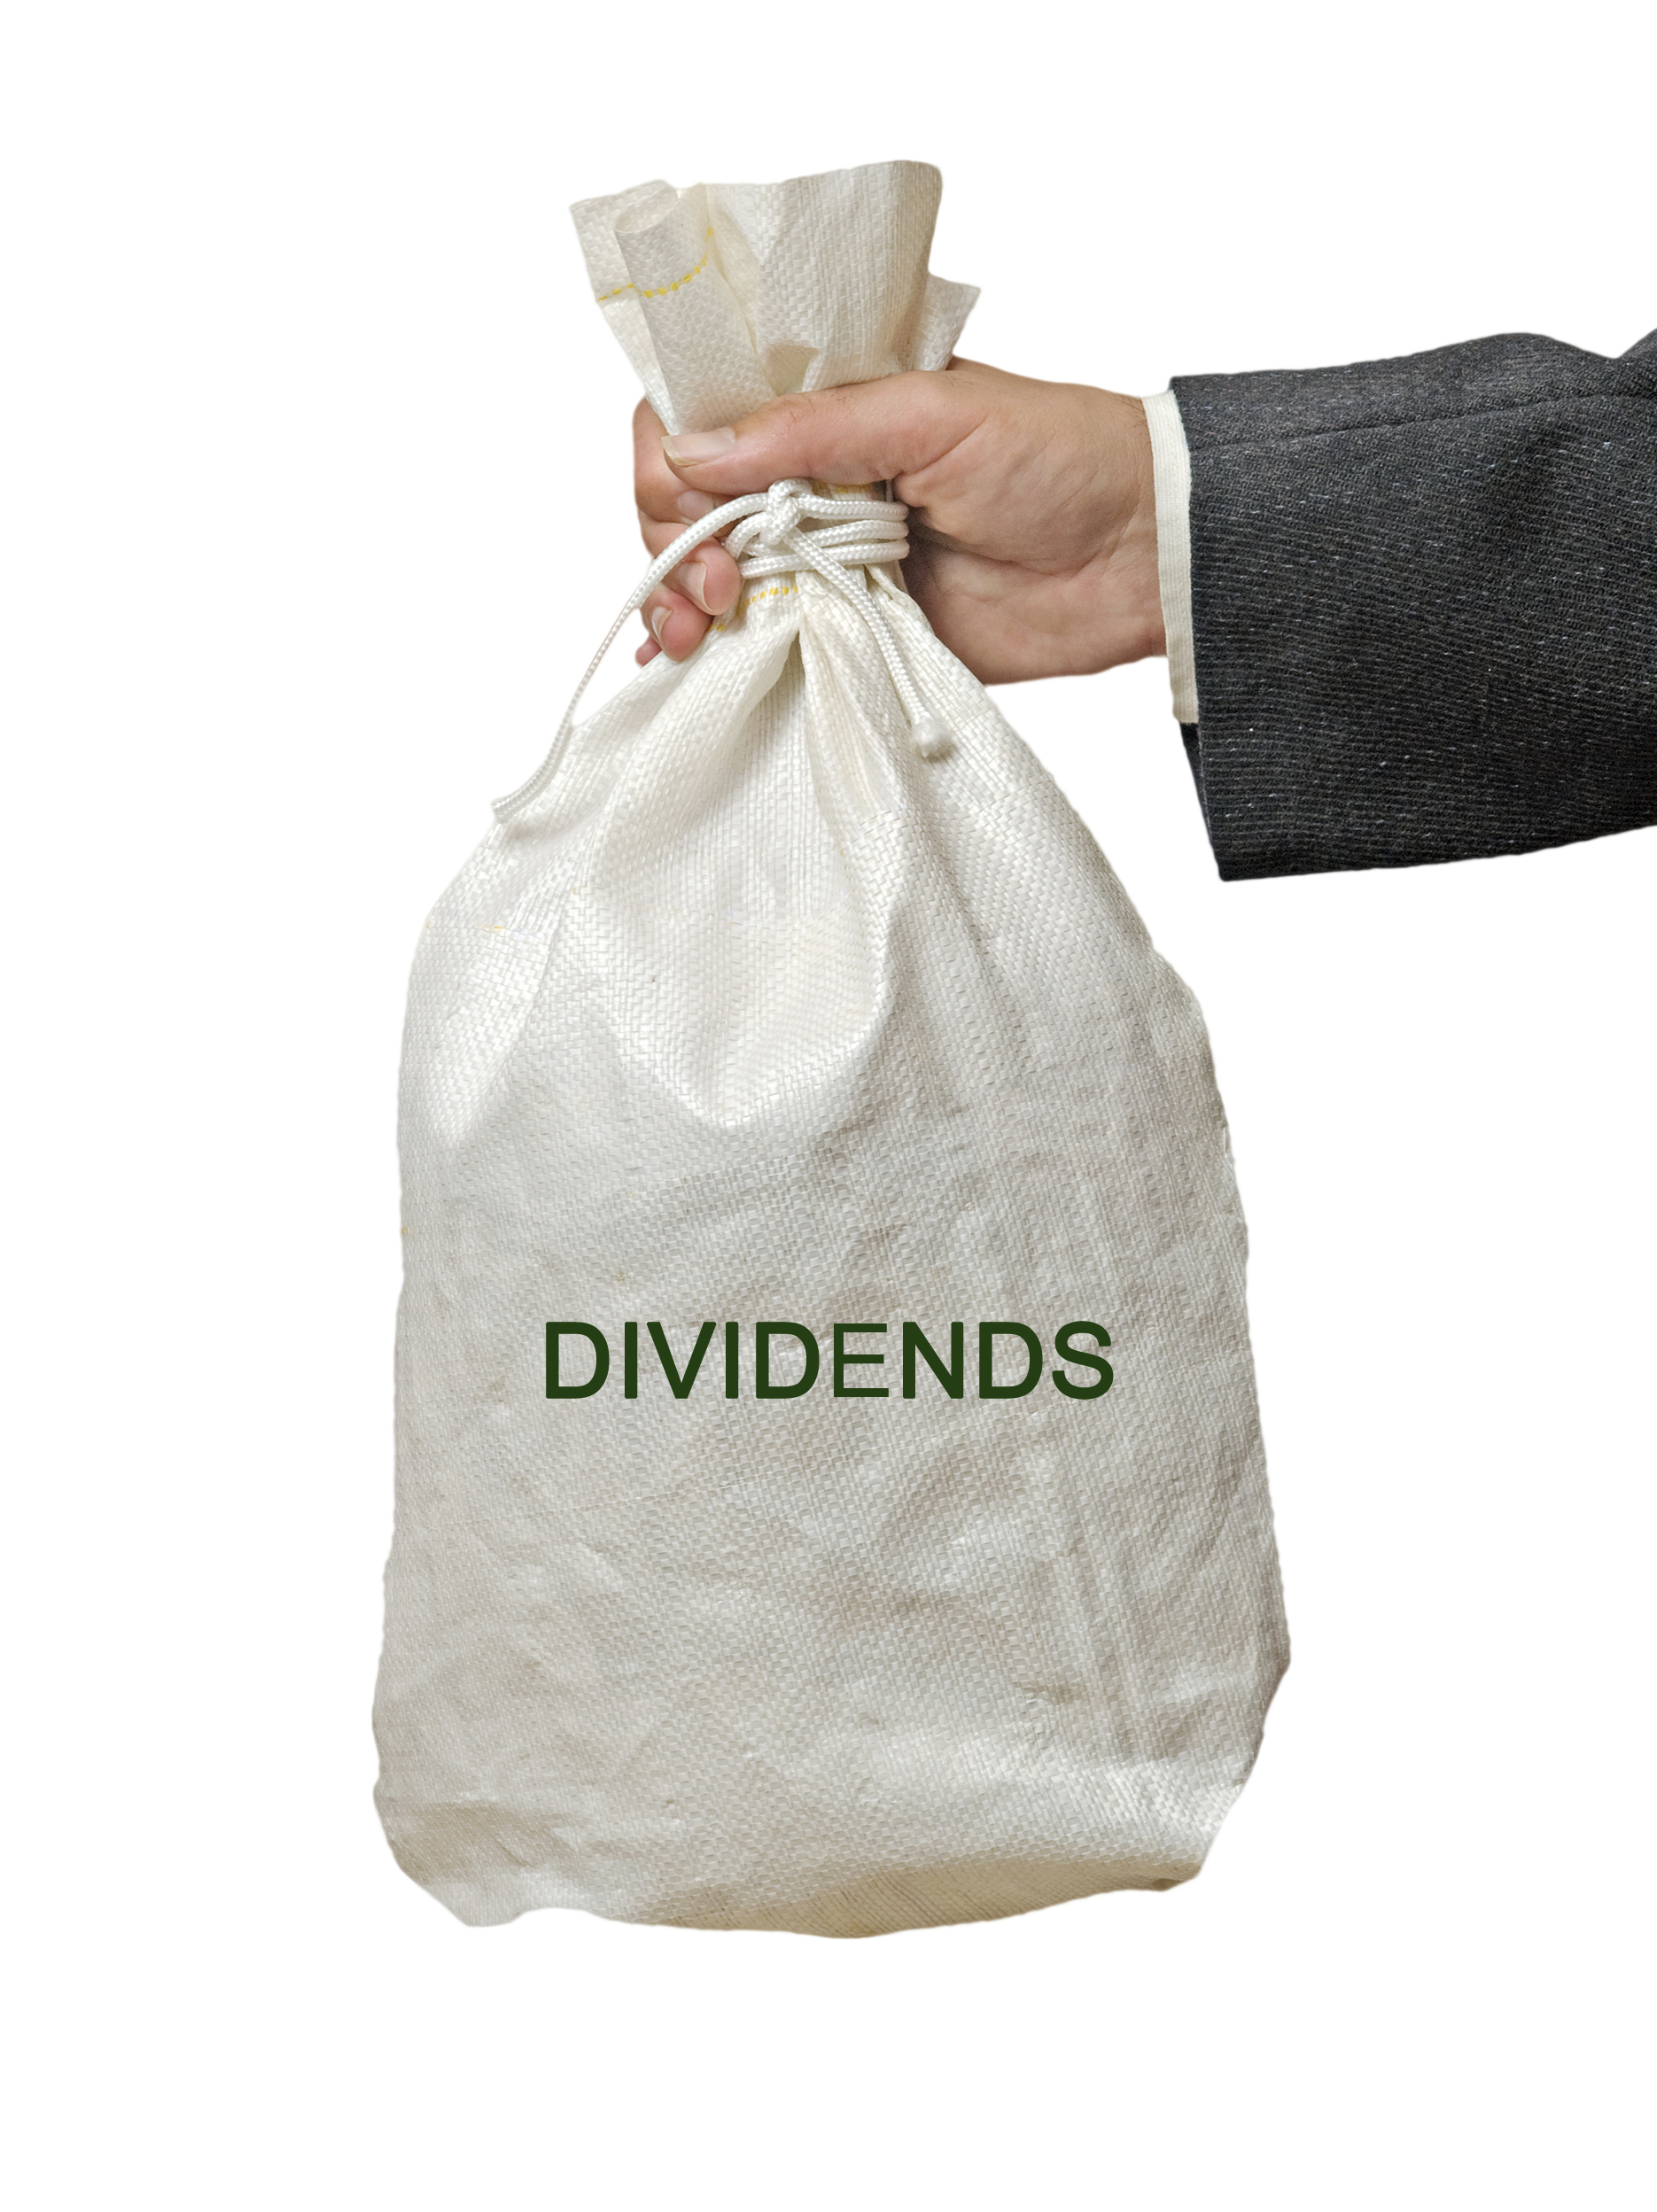 Marriage Or Relationship Breakdown – Dividends And Deemed Dividends